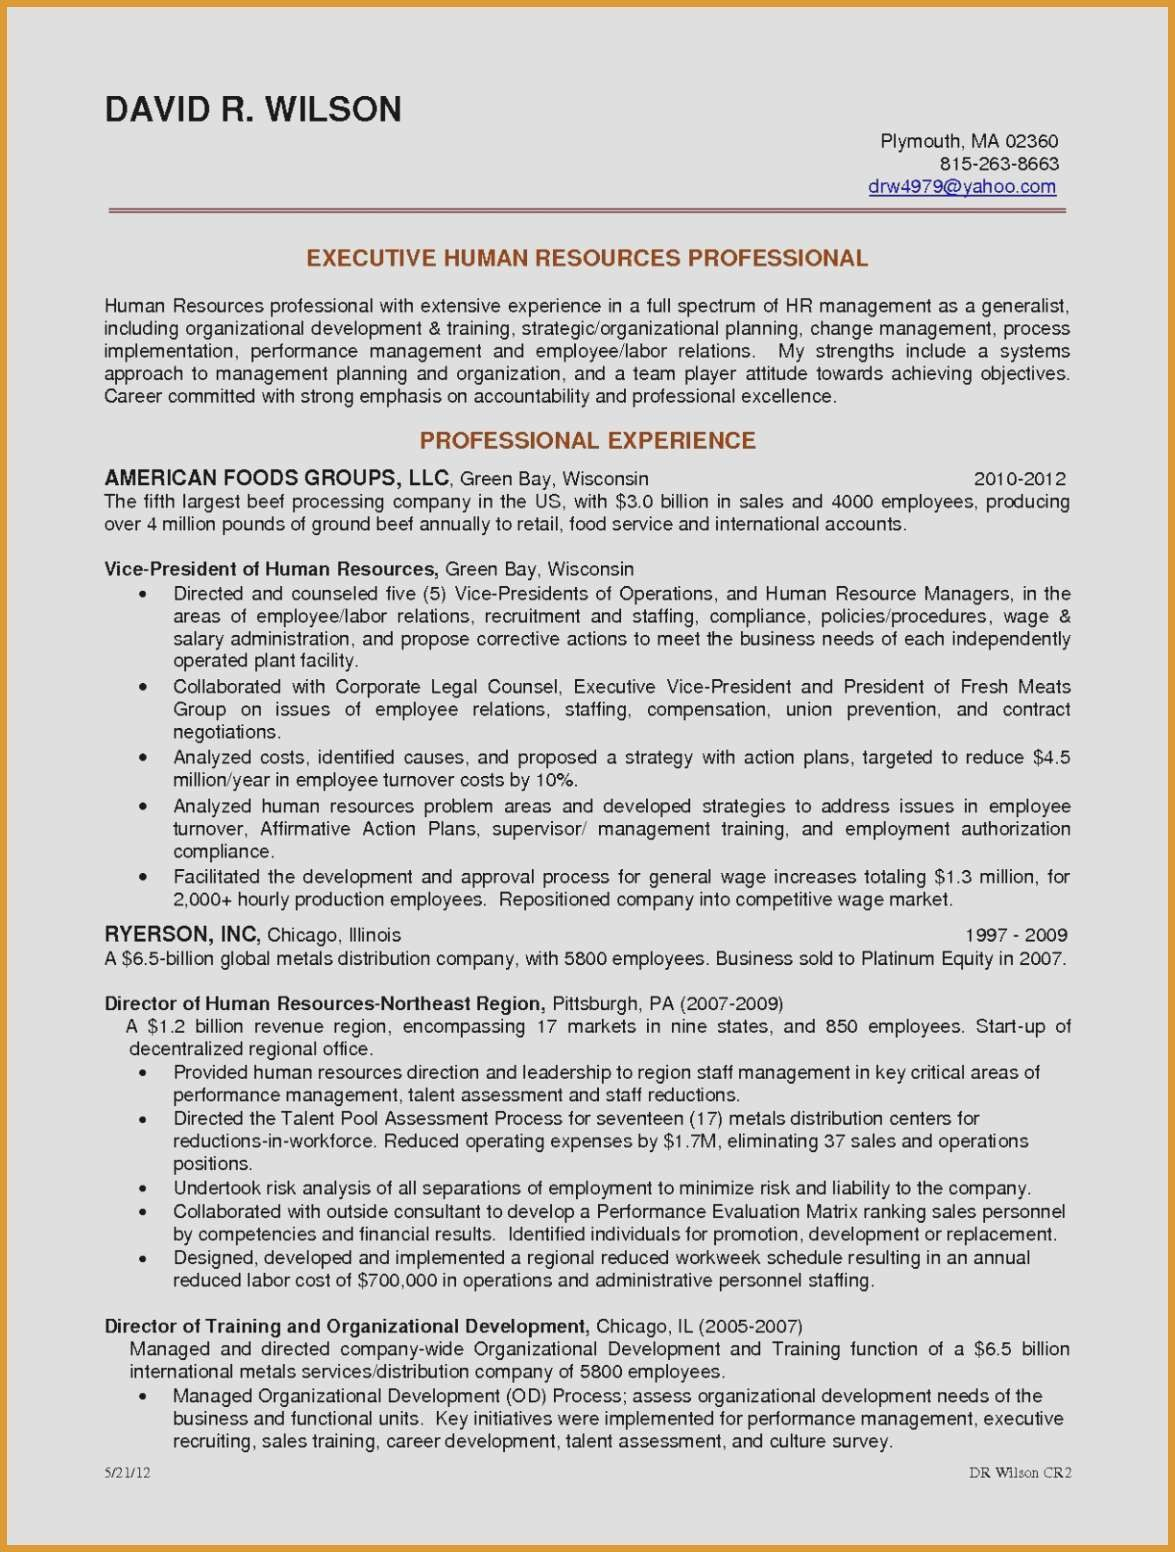 Executive Resume Writing Service - Executive Resume Writer Beautiful Executive Resume Writing Service